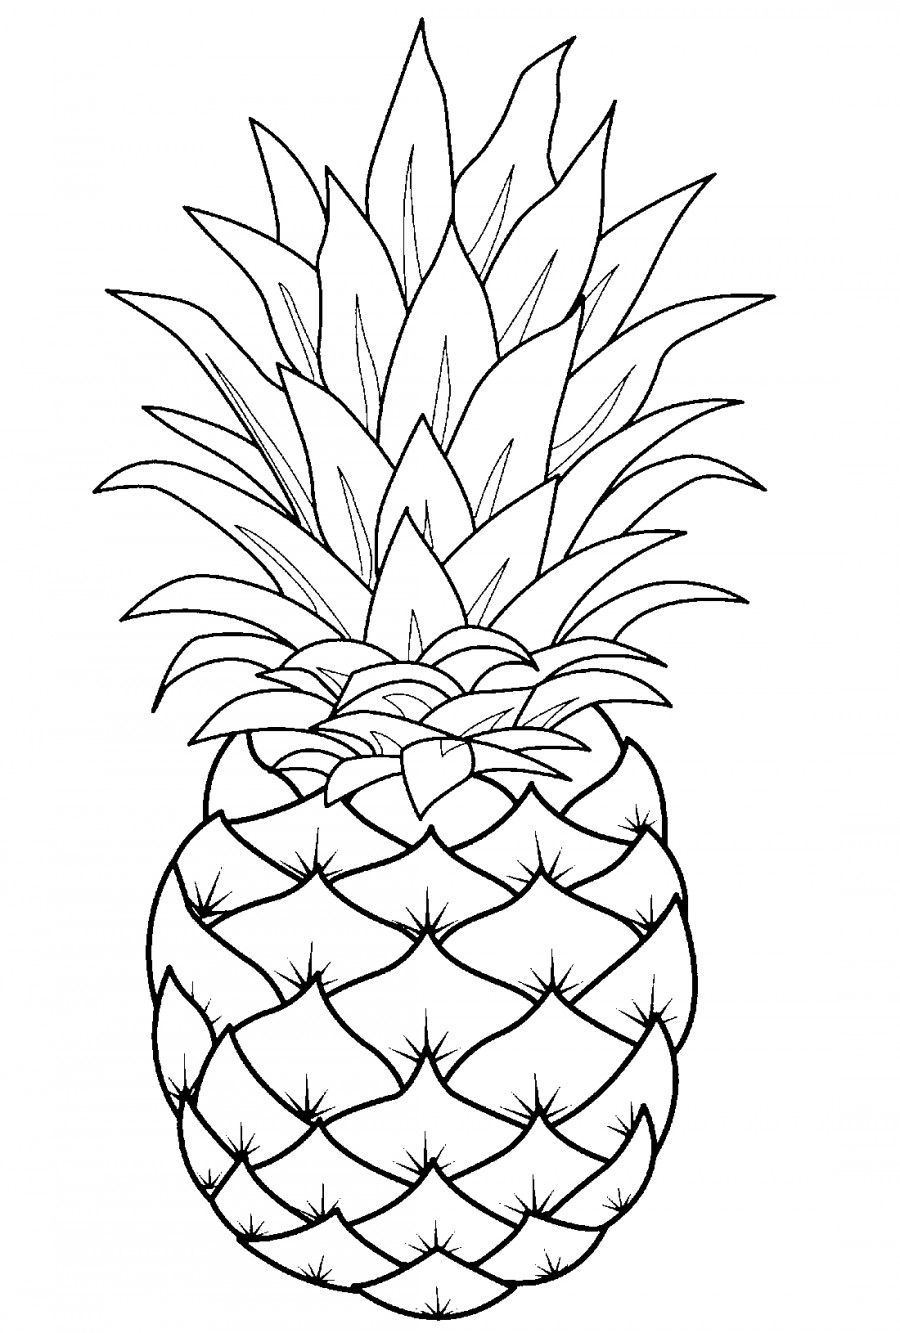 coloring pineapple pineapple coloring pages coloring pages to download and pineapple coloring